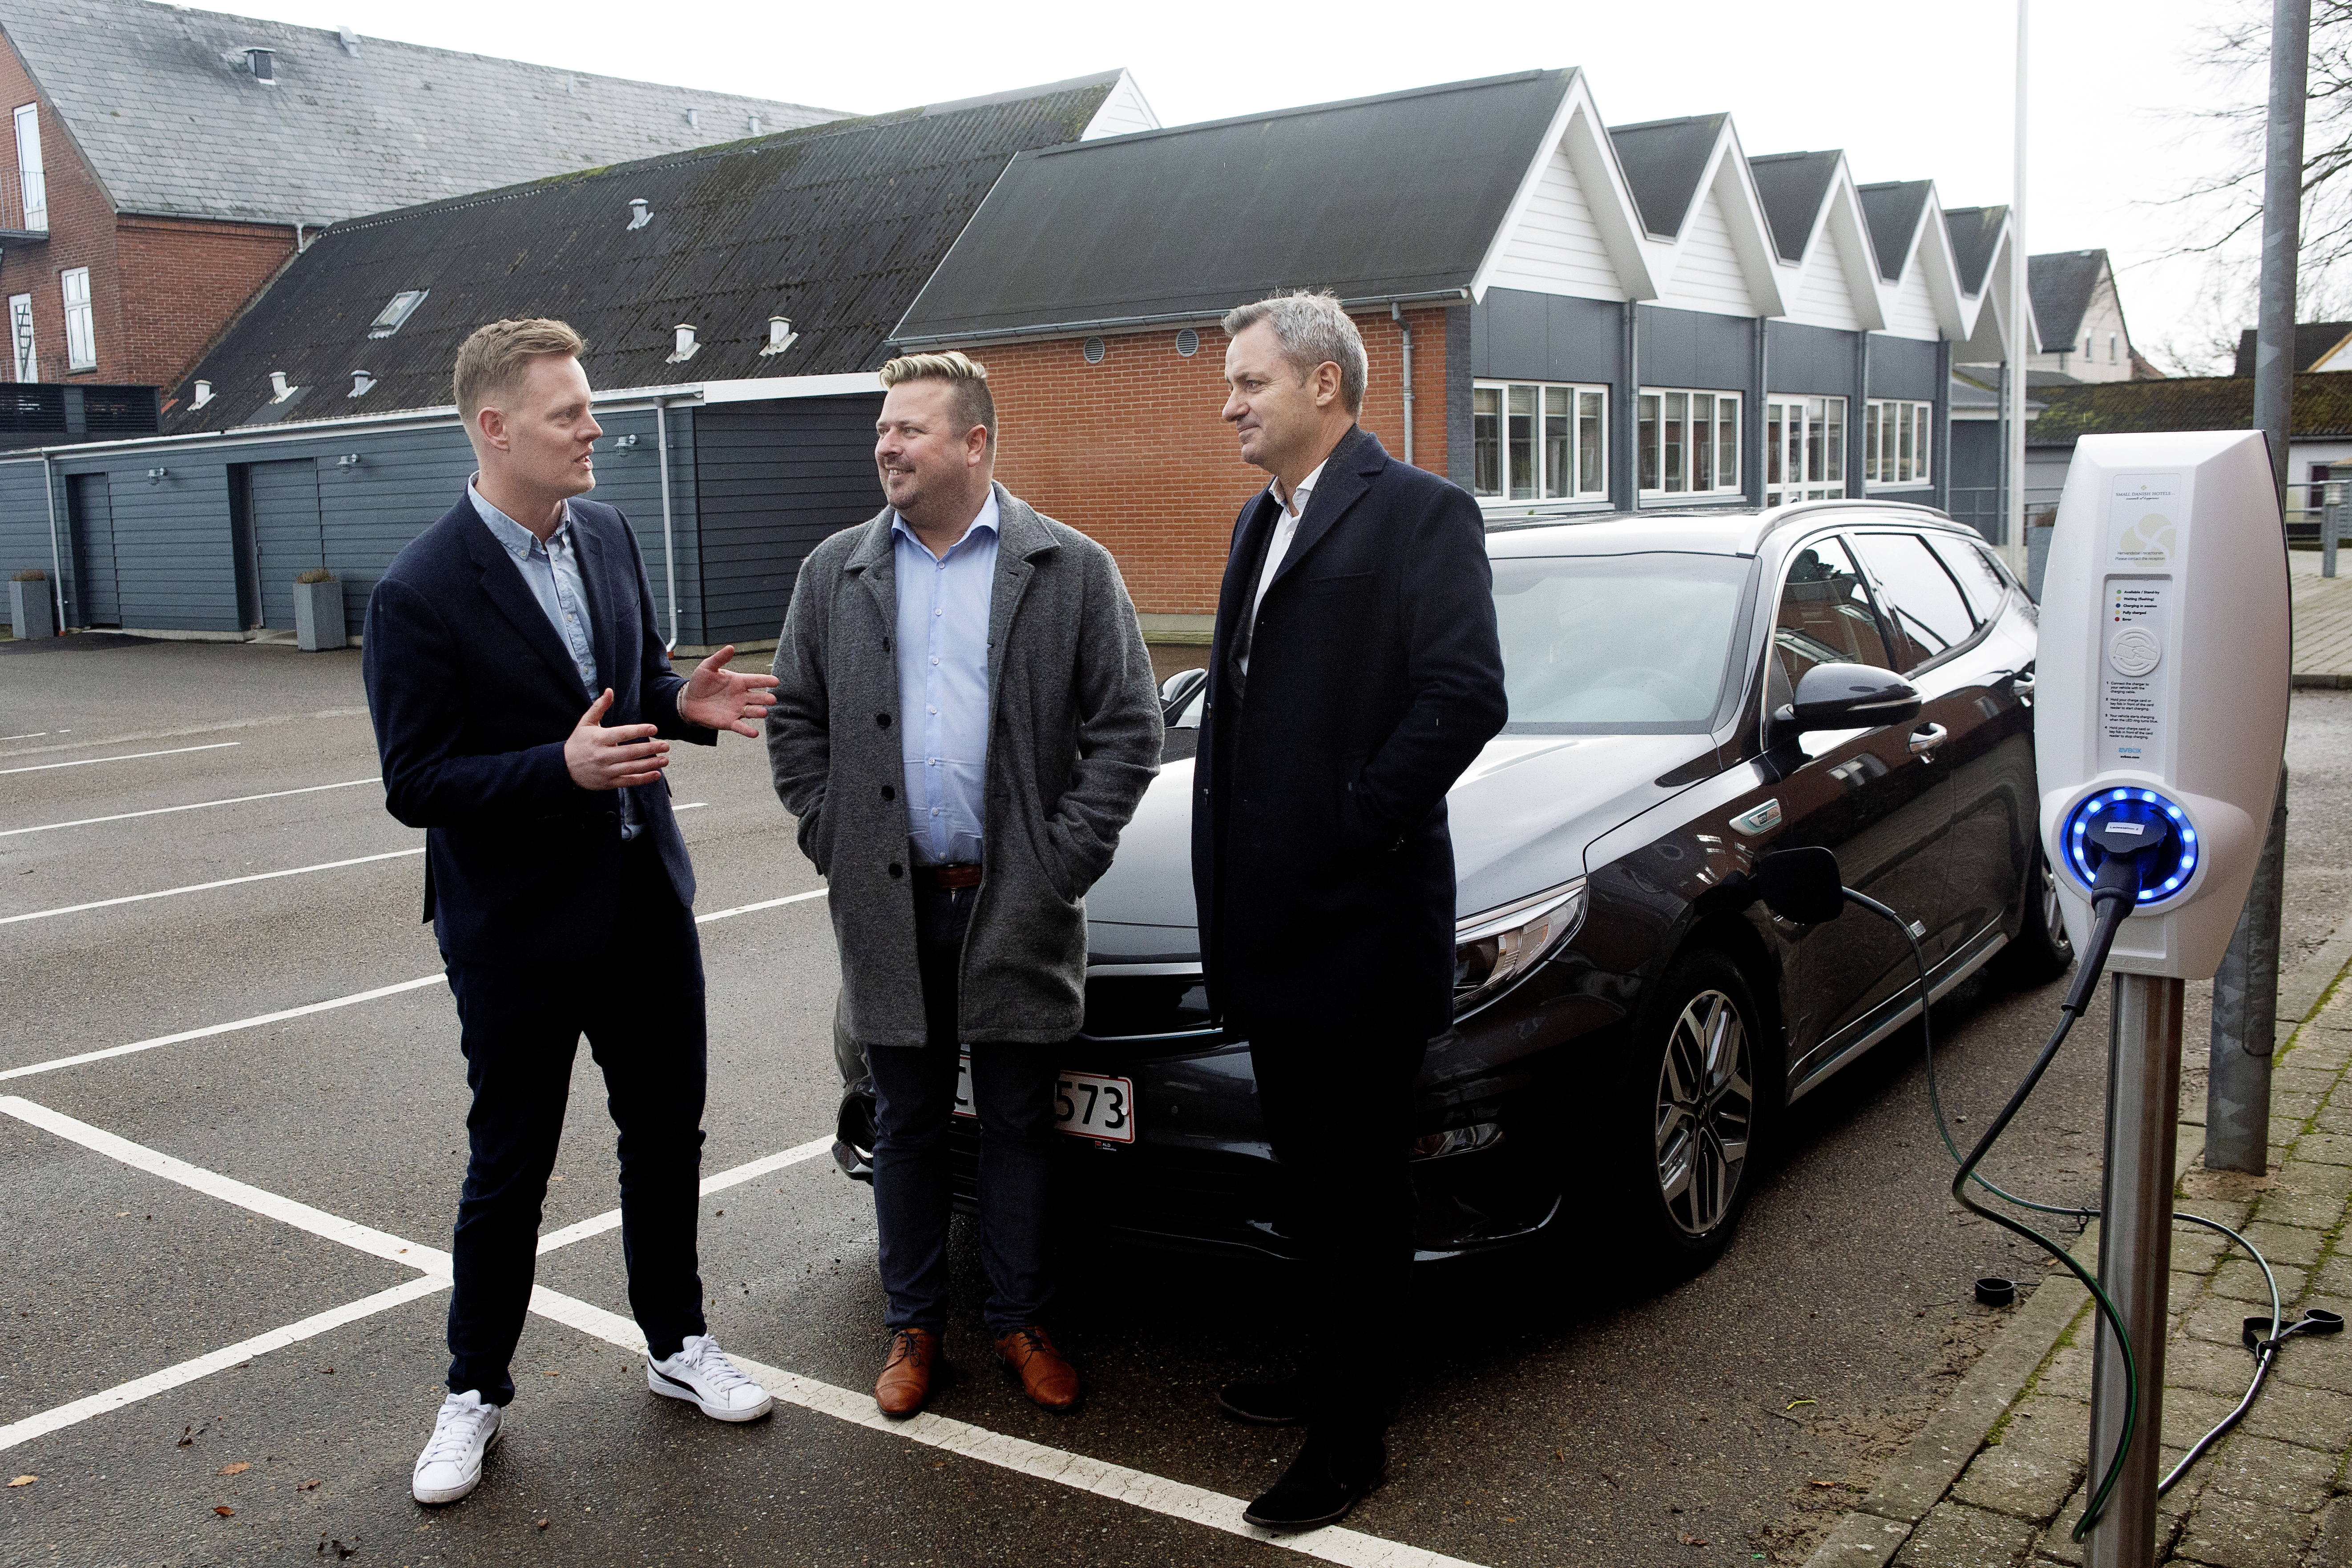 From left to right: Rasmus Wagner Jensen (former BDM at EVBox), Michael Thinggard (Owner of Hotel Thinggaard) and Jørgen Christensen (CEO of Small Danish Hotels)